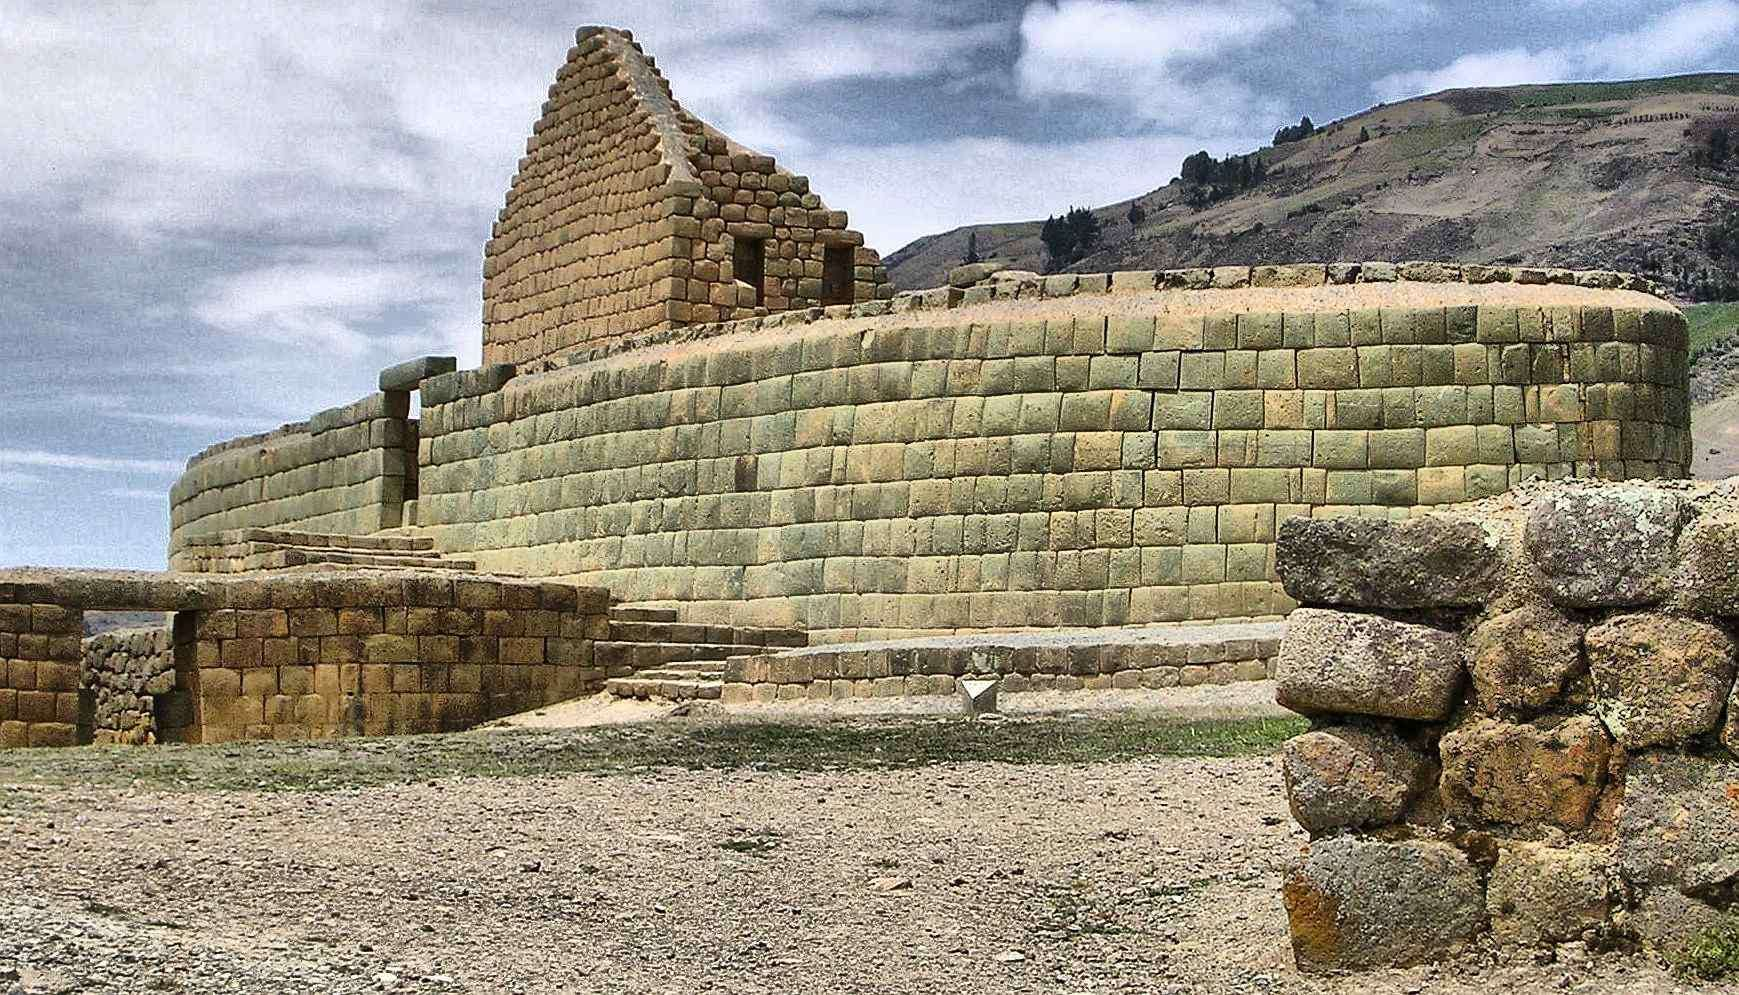 Incan Location and Geography